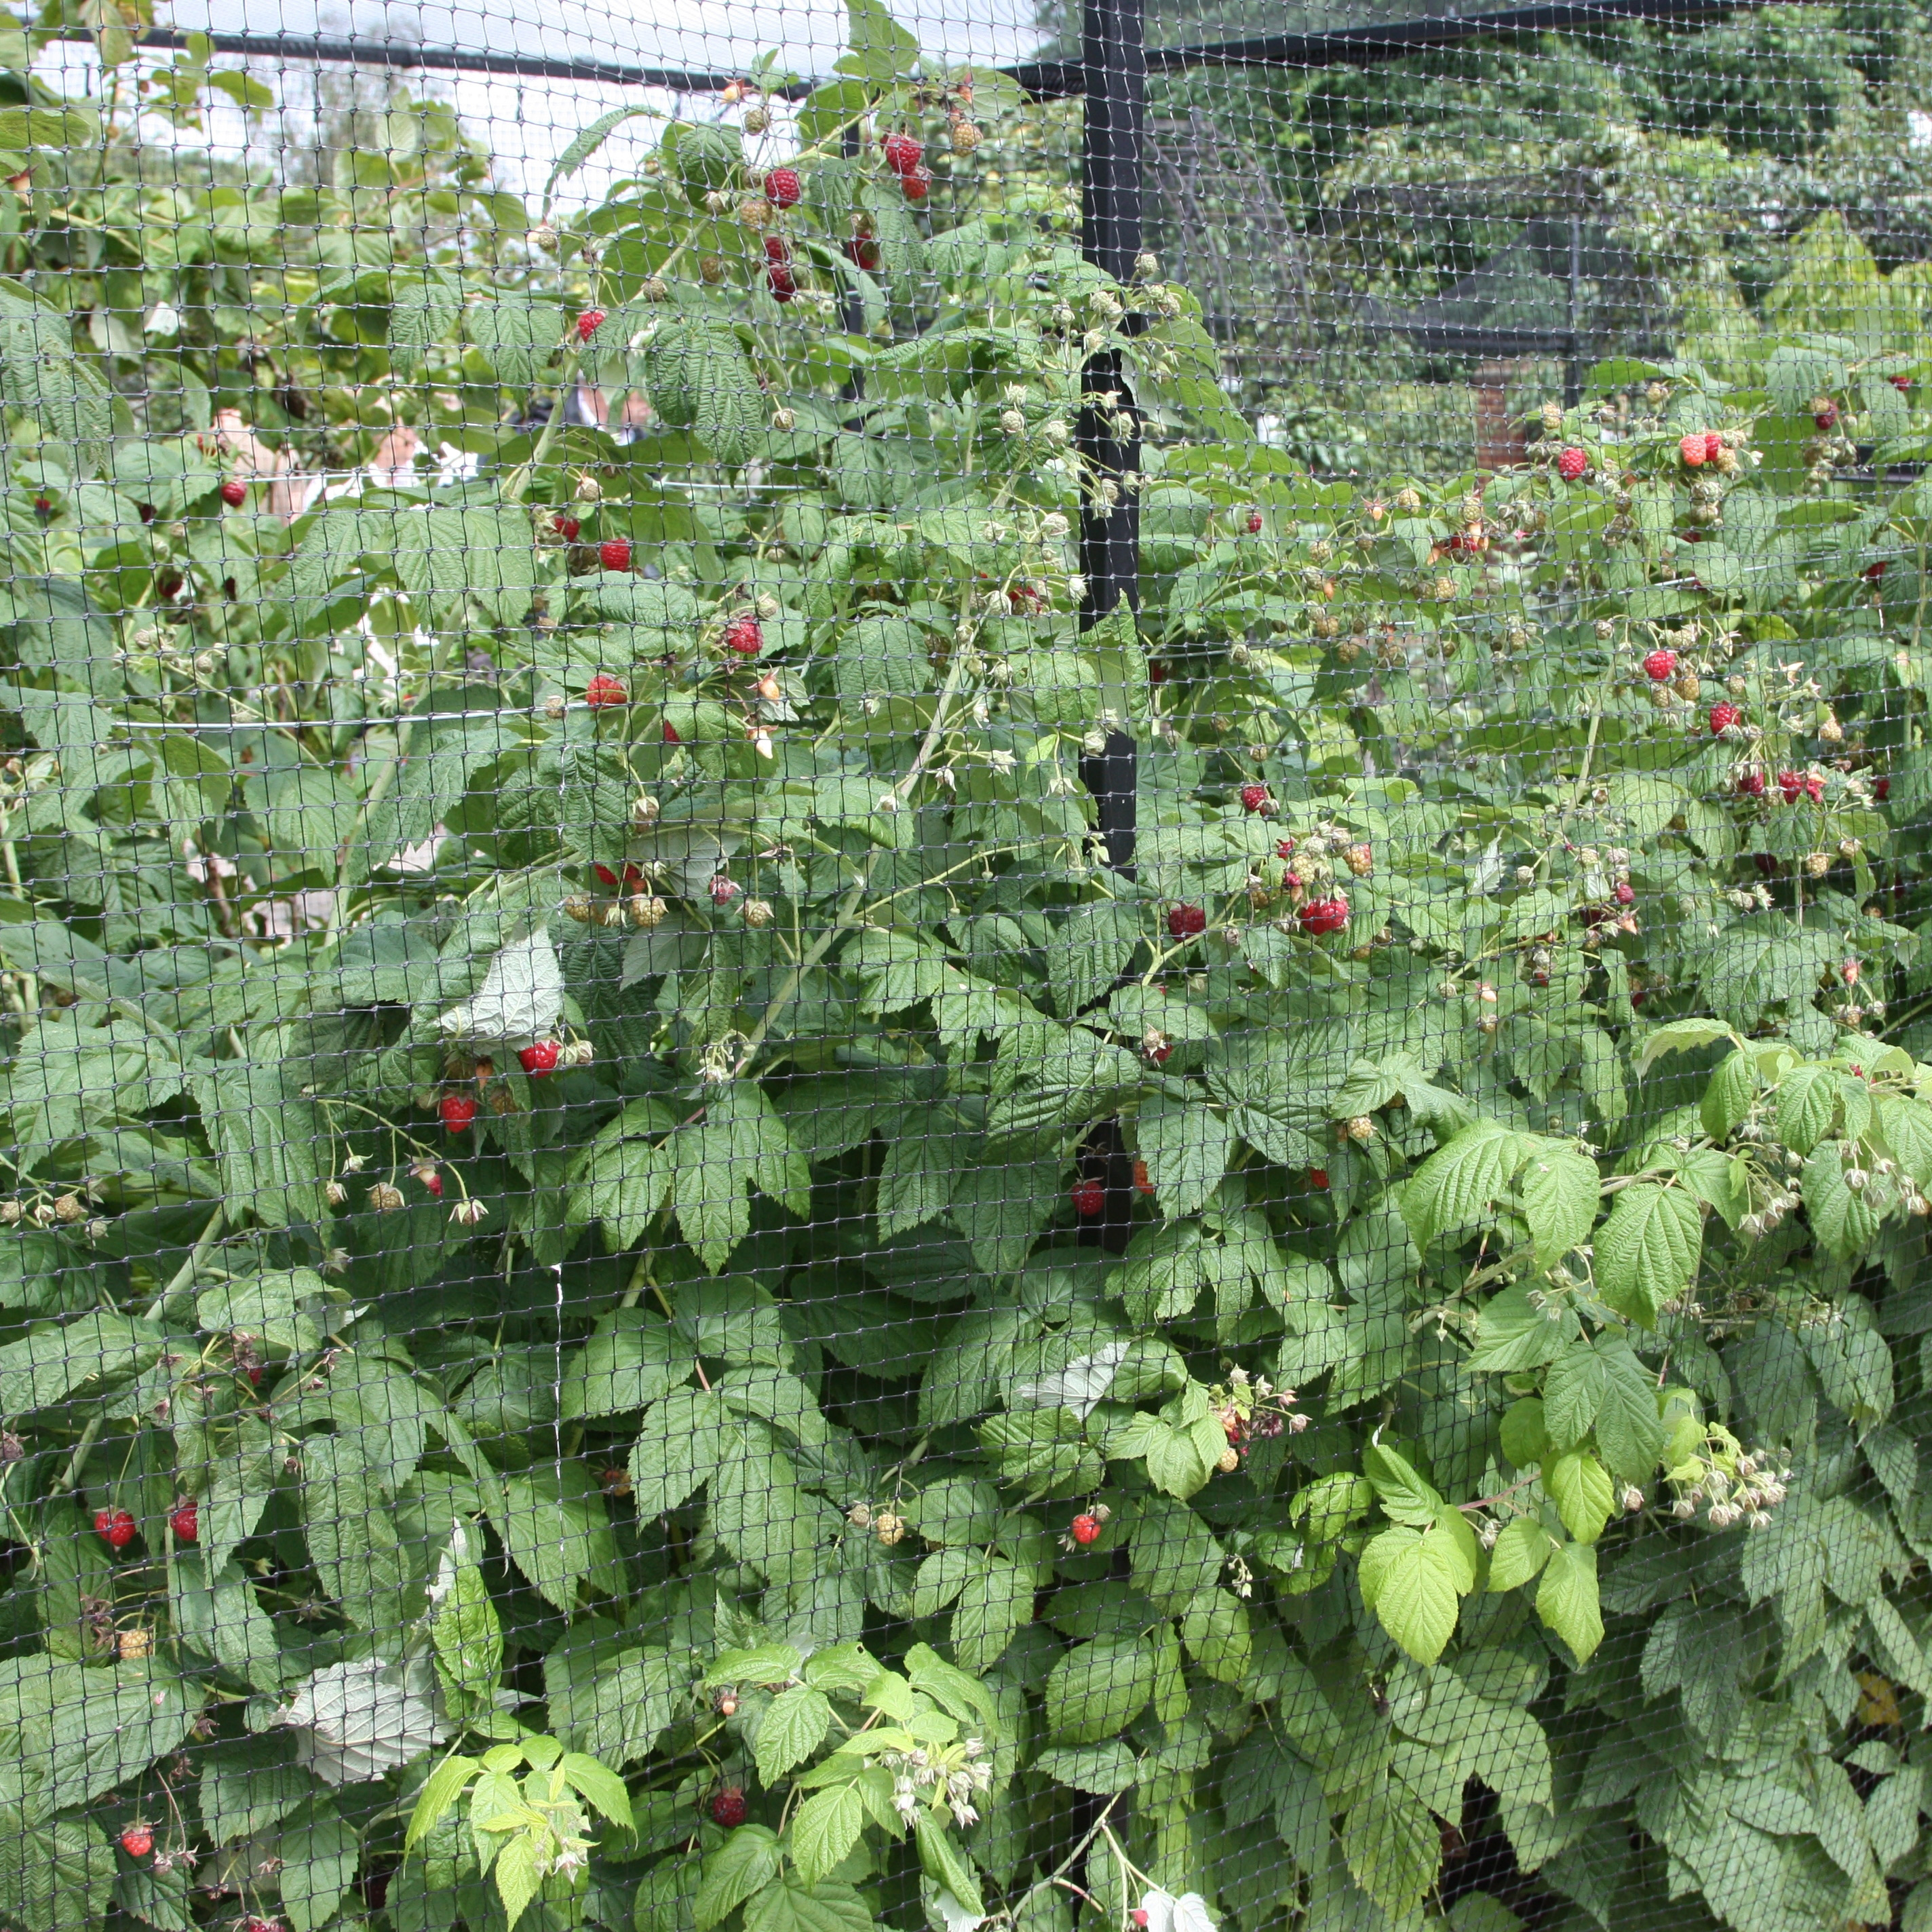 raspberry Autumn Bliss - autumn fruiting